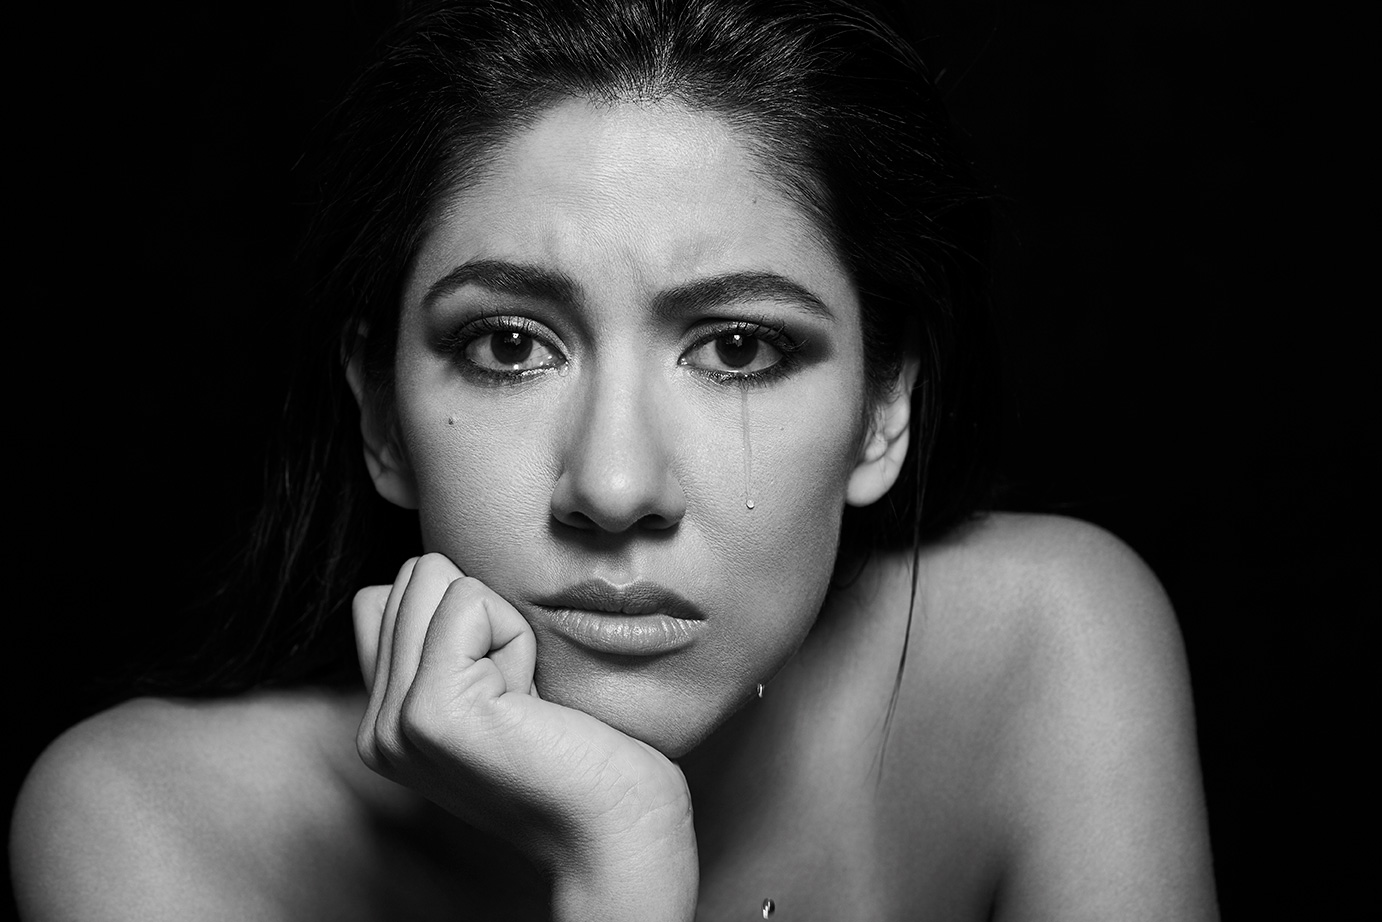 STEPHANIE BEATRIZ – imagista